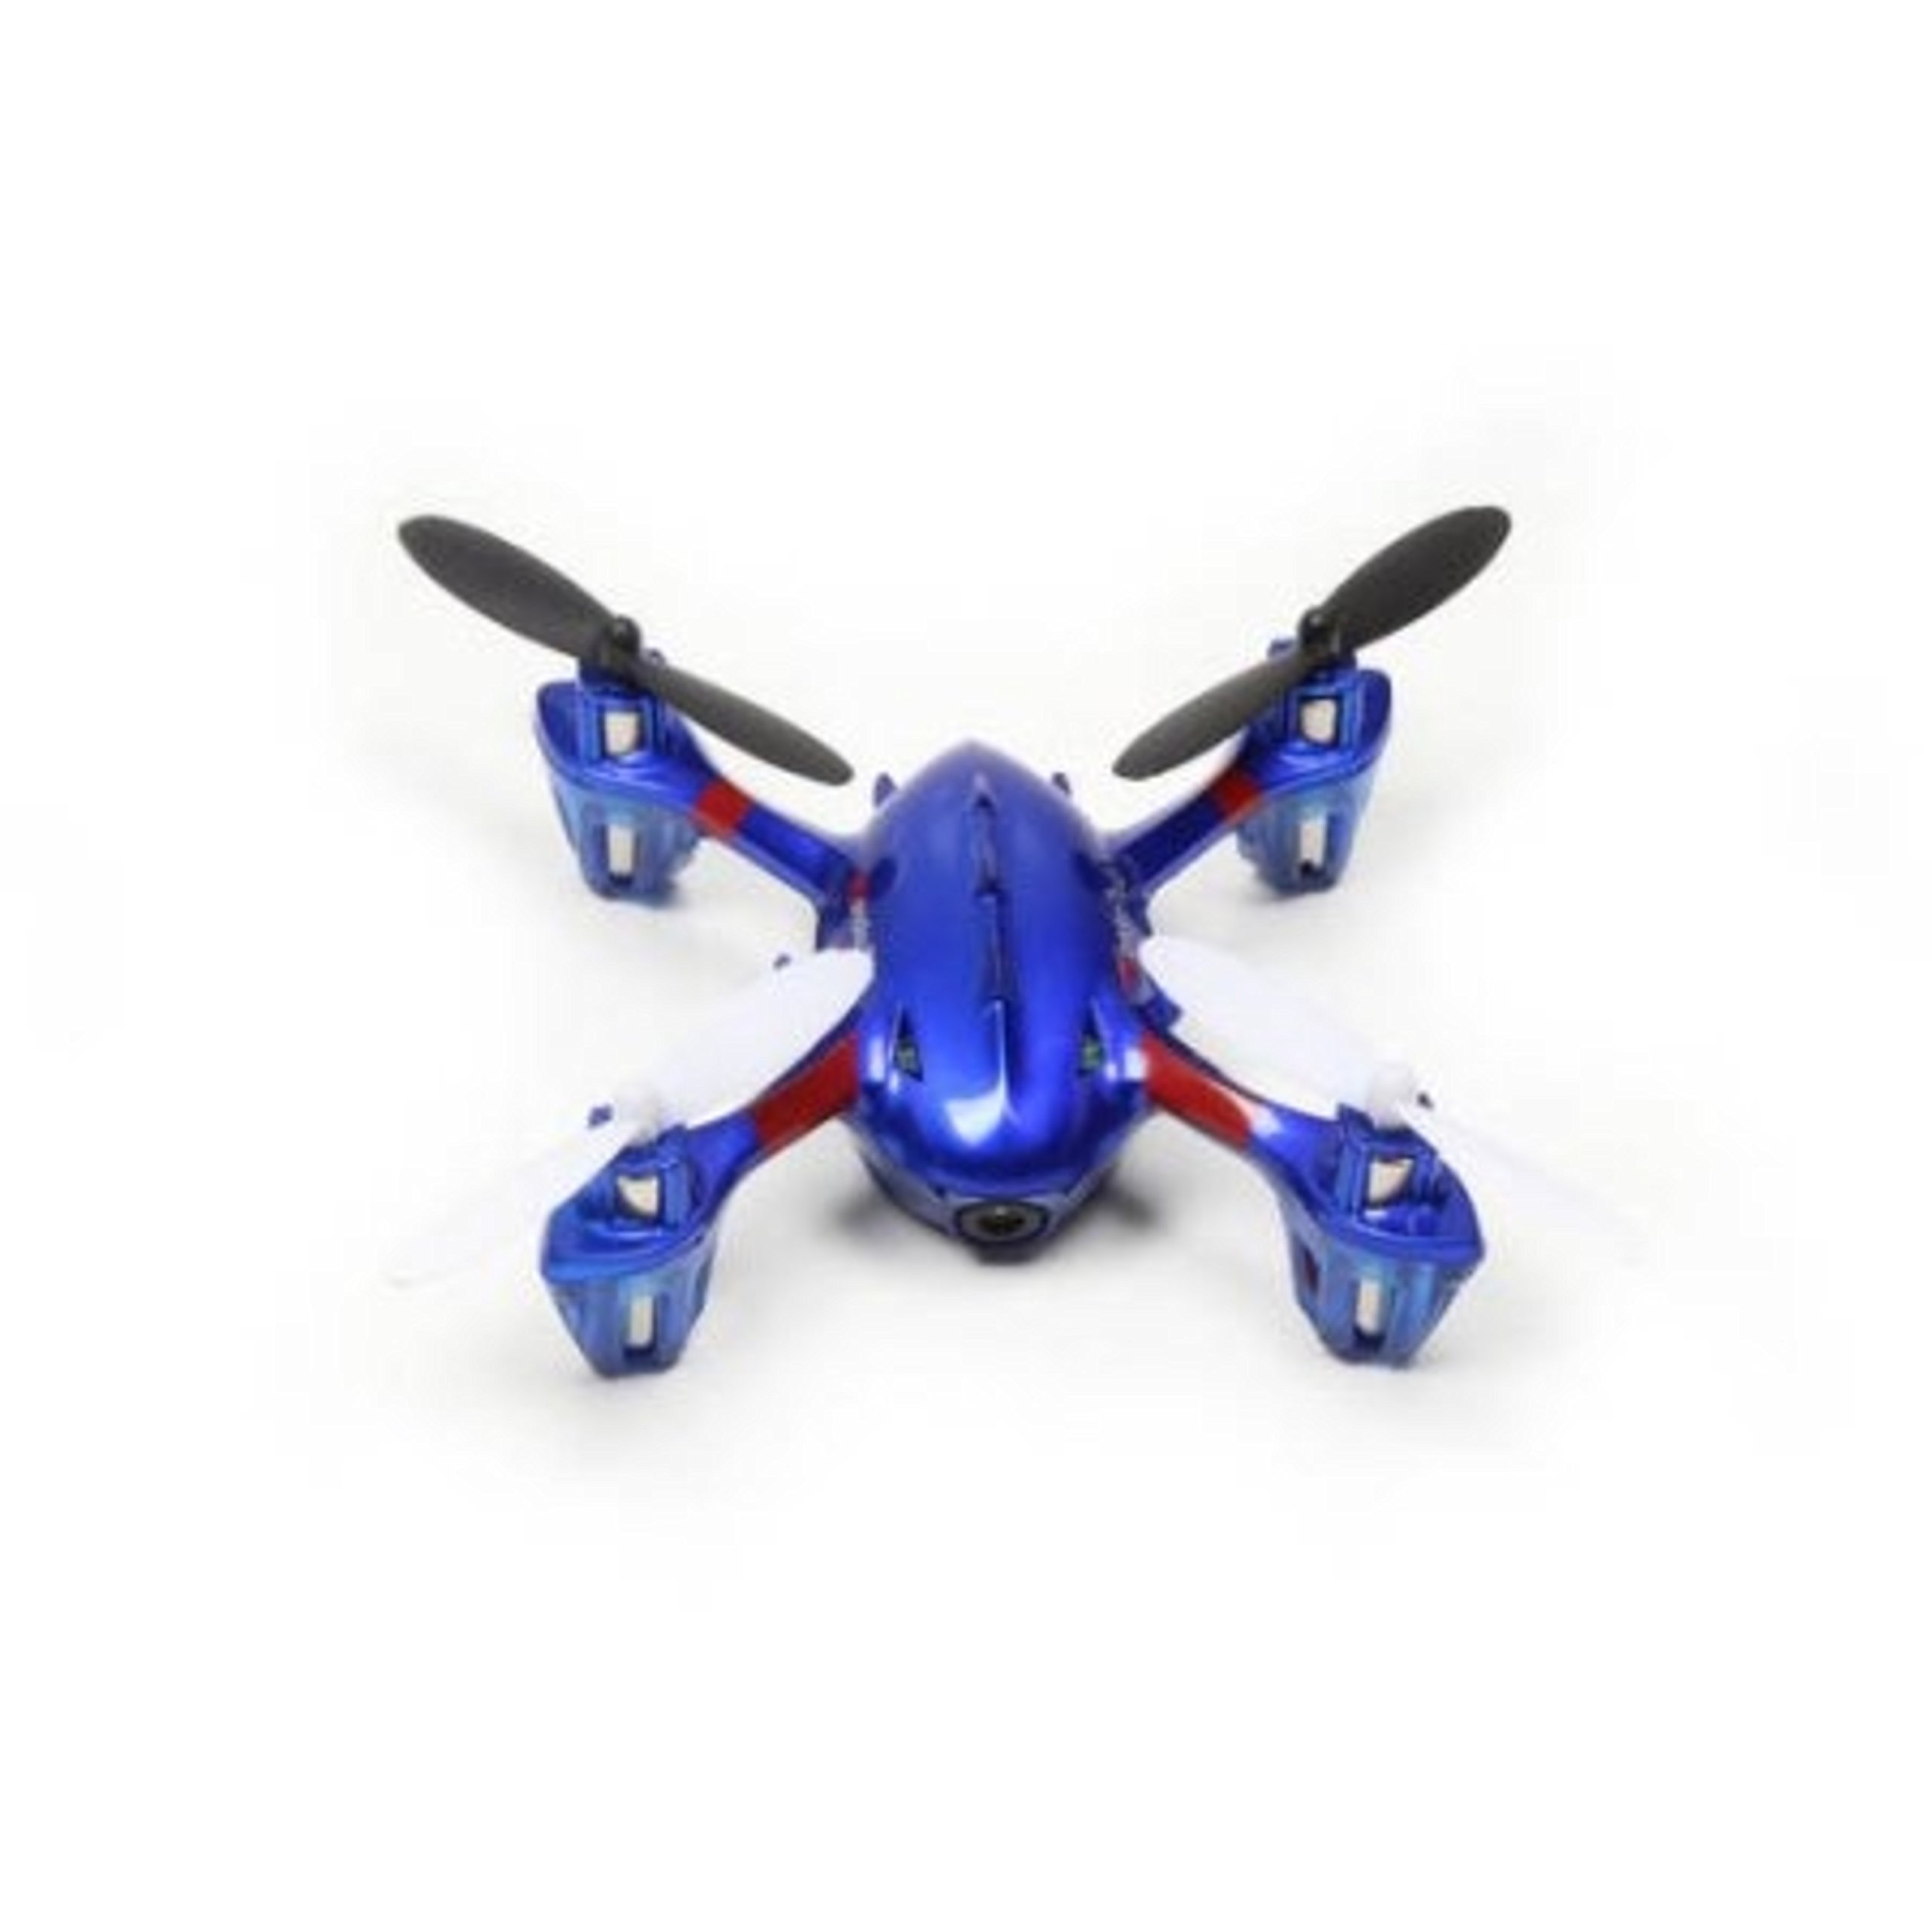 5-Channel 2.4GHz Remote Control Quadcopter Flying Blue Drone with LED Lights by Planes Helicopters & Air